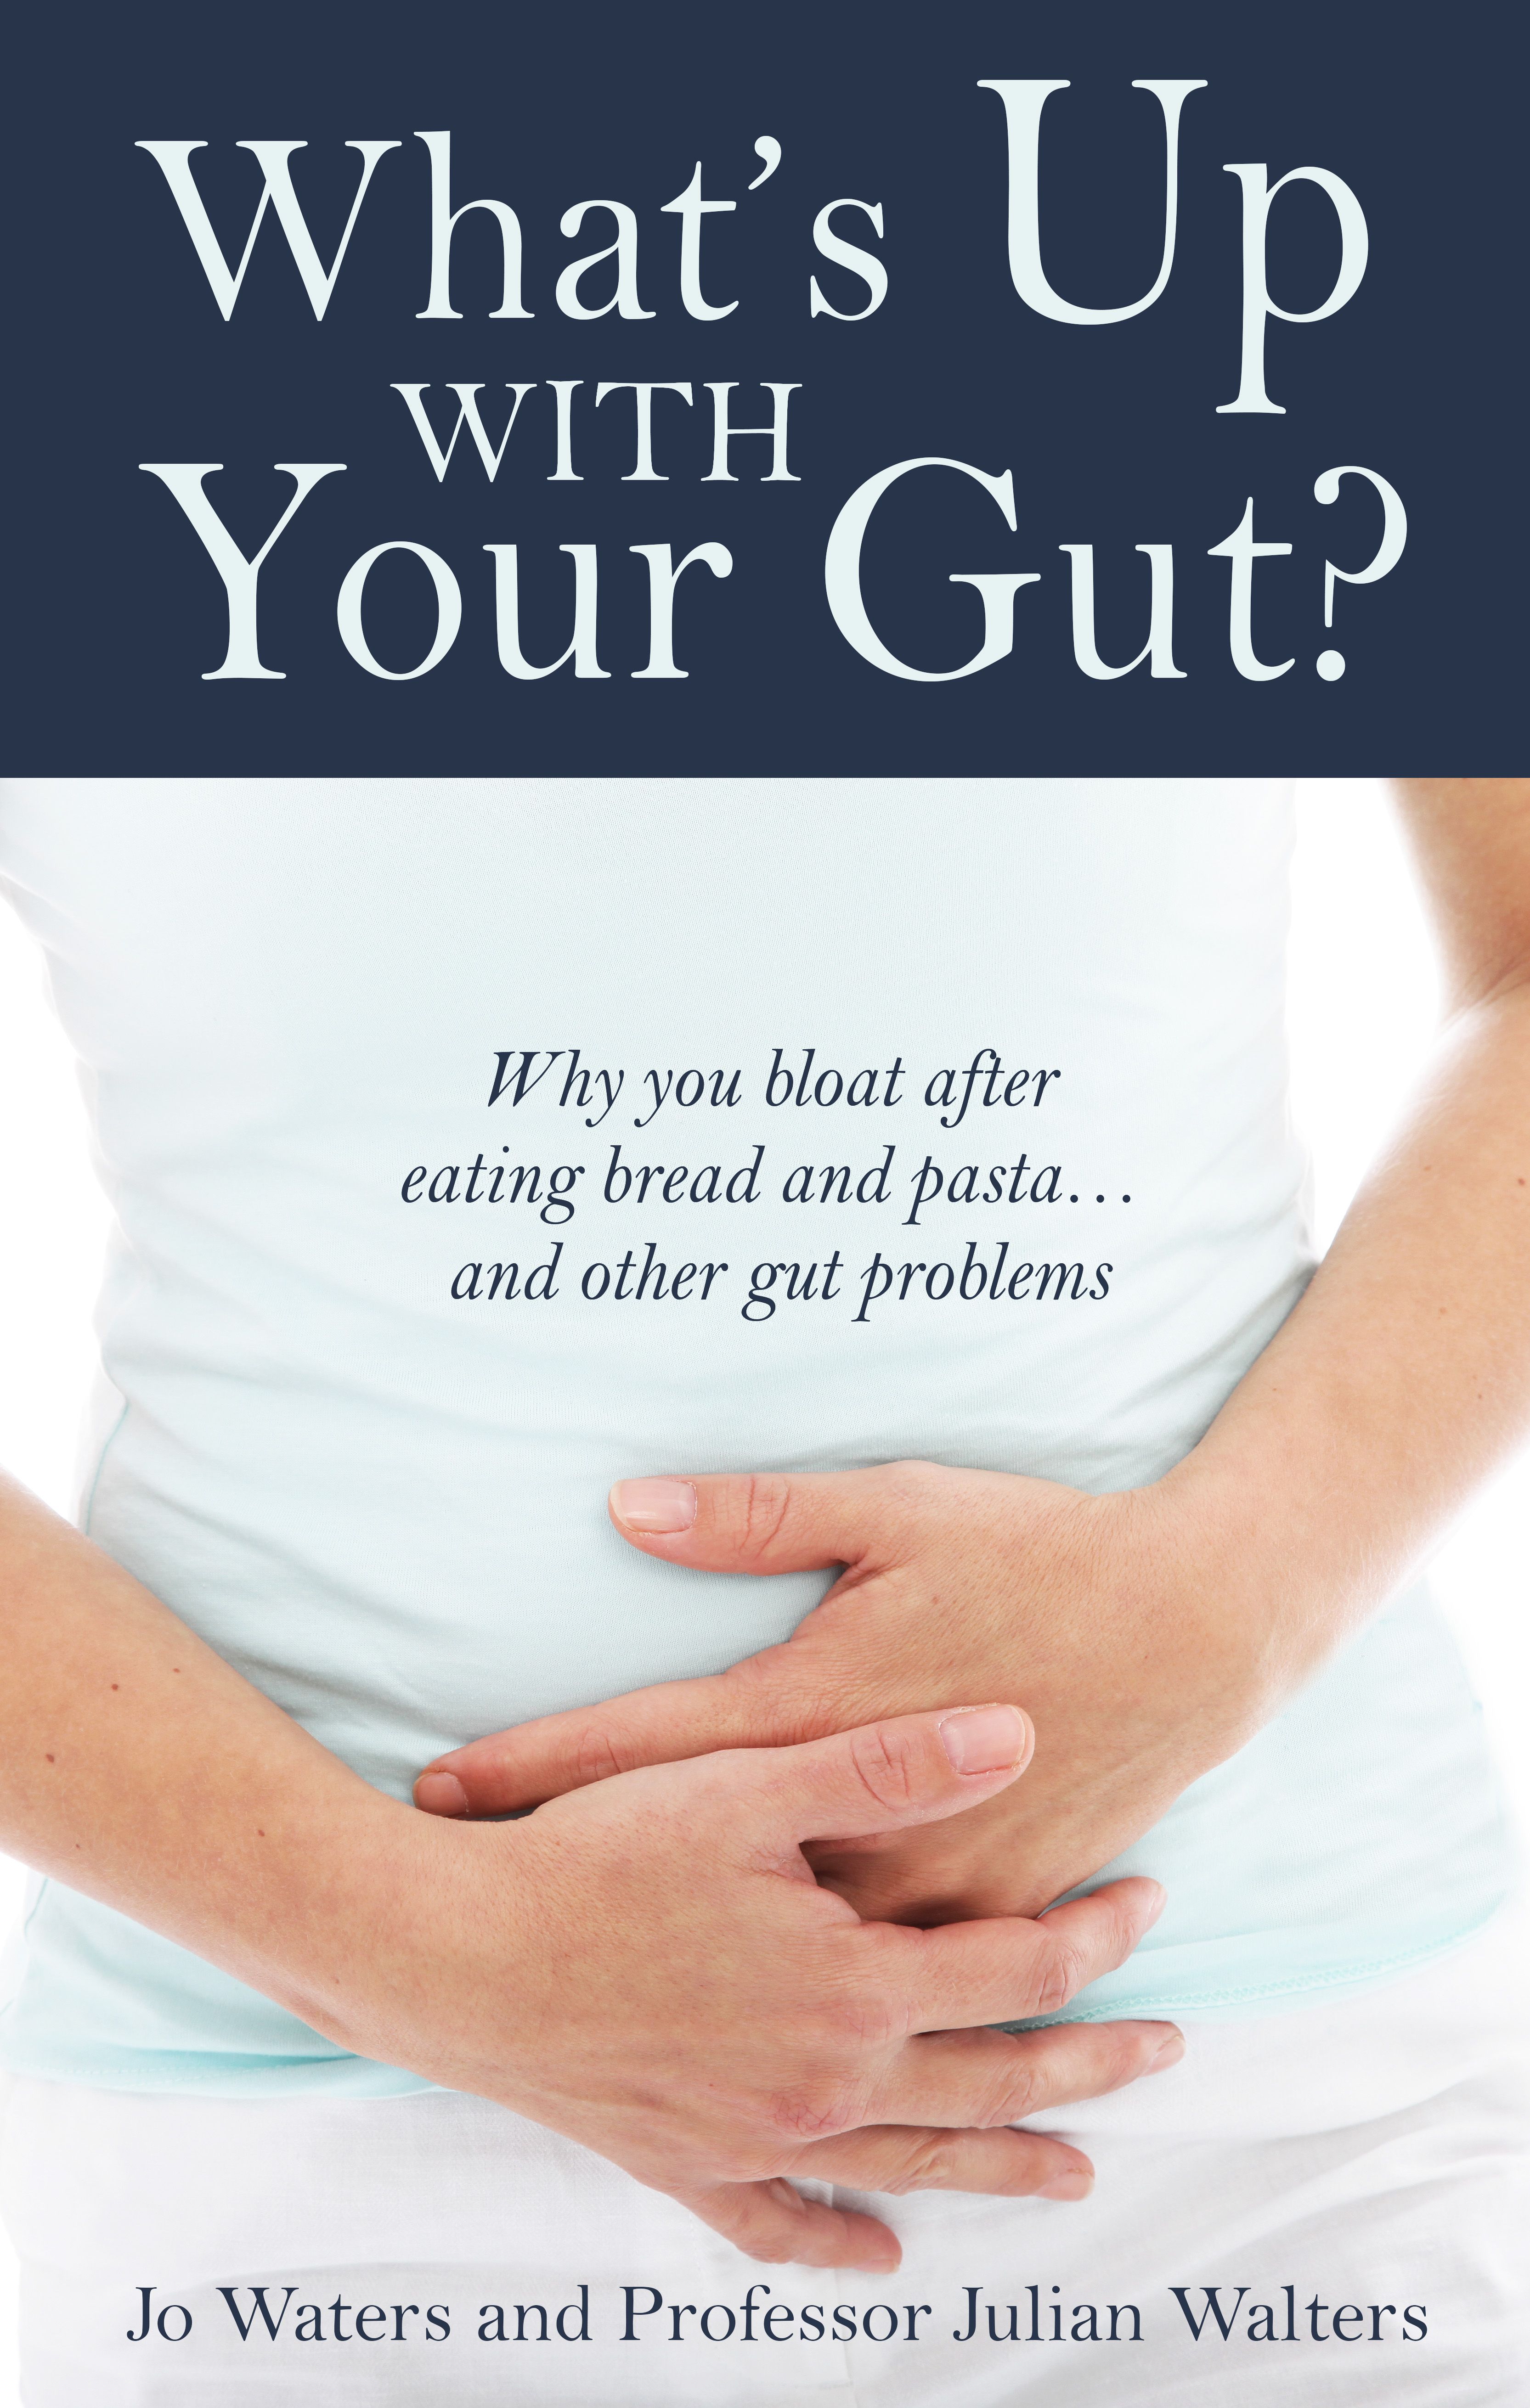 Whats up with your gut